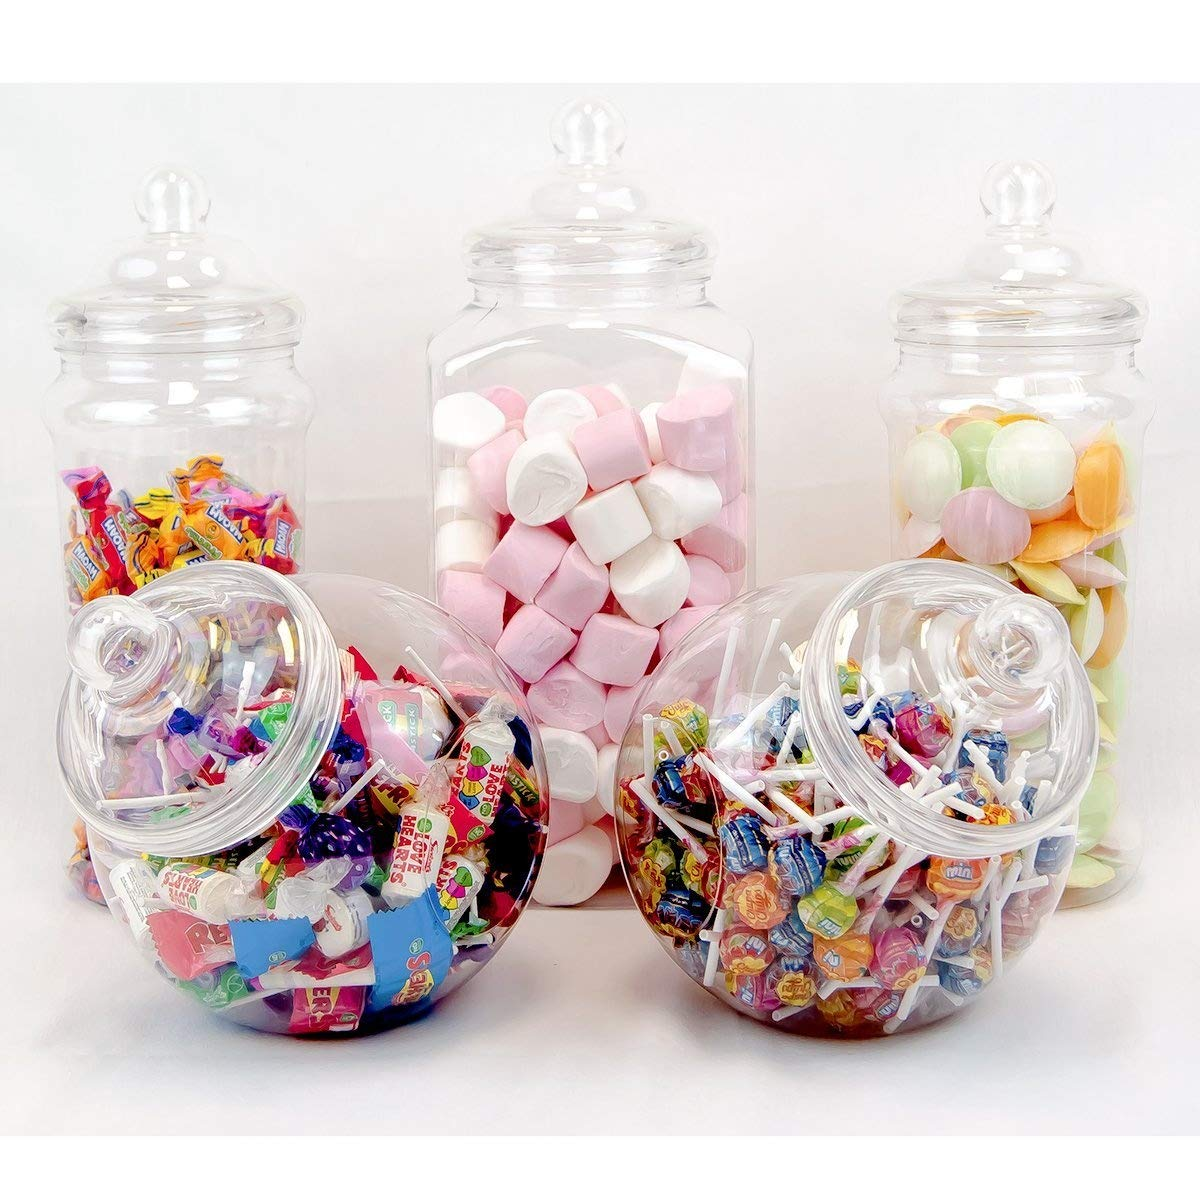 5 Large Vintage Victorian Pick & Mix Sweet Shop Candy Buffet Kit Party Pack Top Star